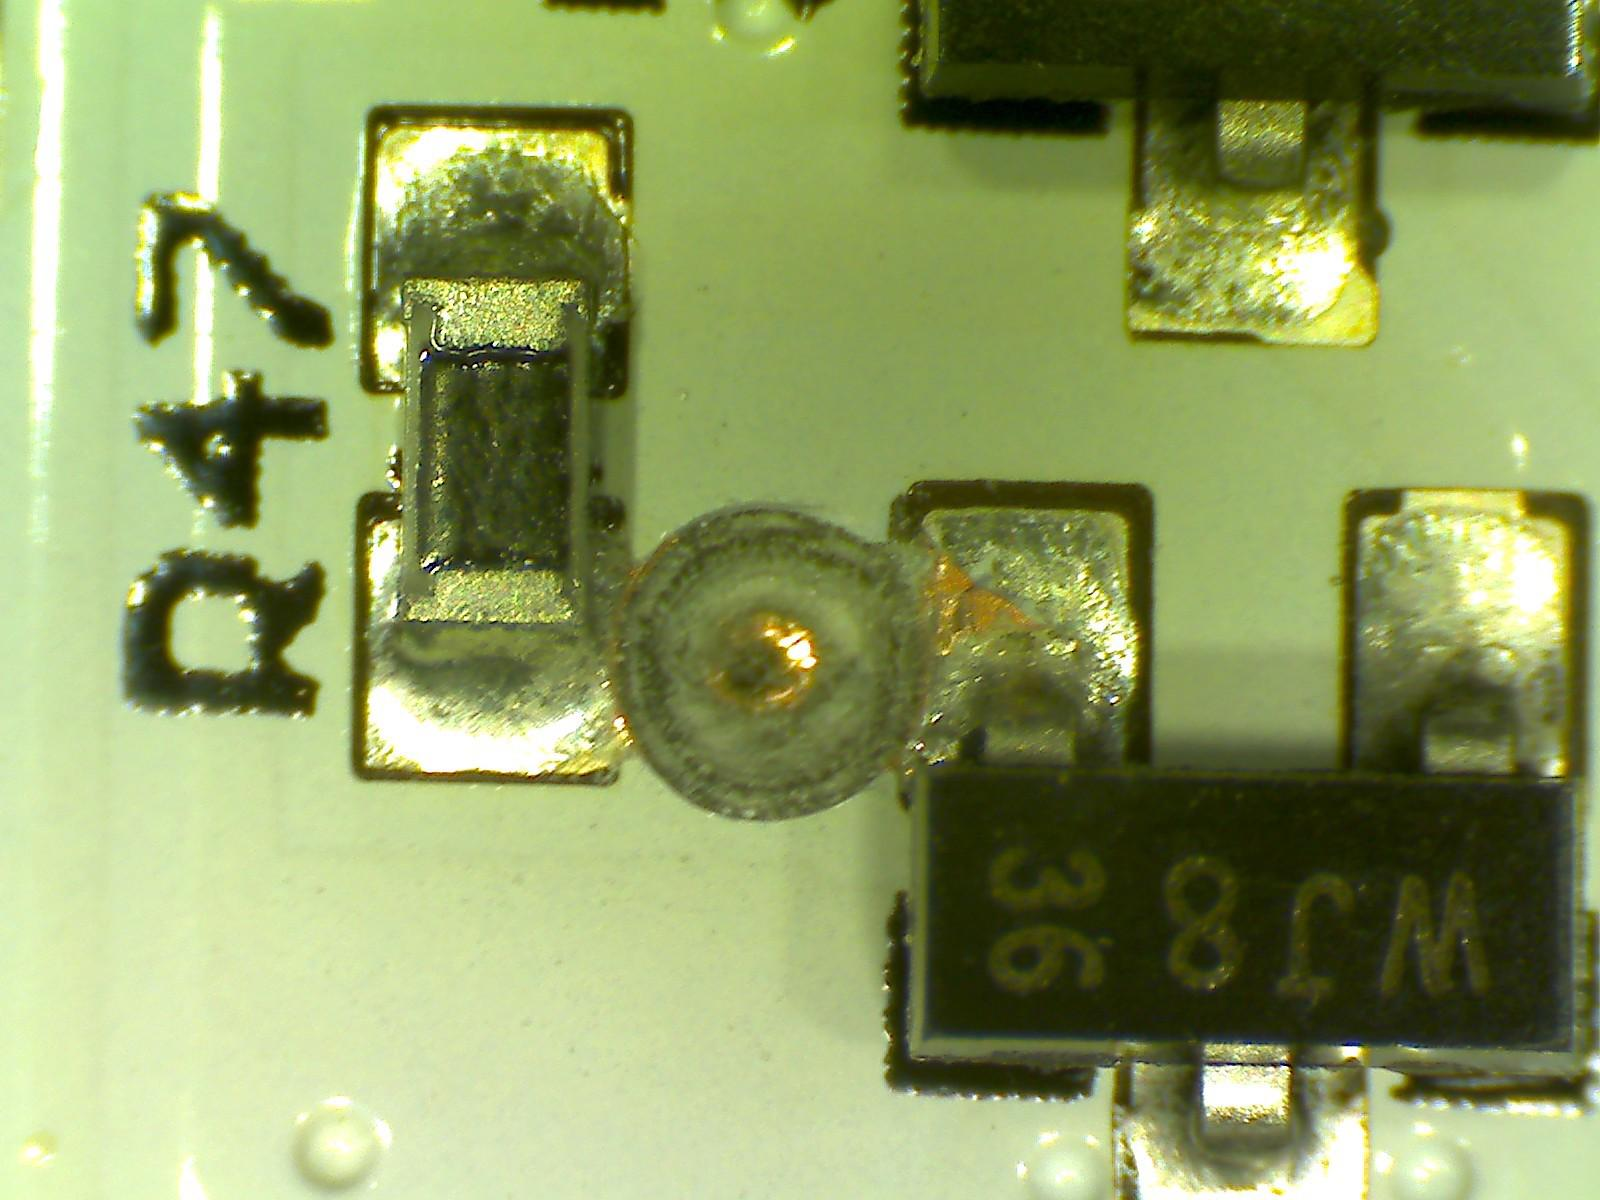 A drilled-out via (to break the connection) between a 0603 resistor and SOT-23-3 MOSFET.